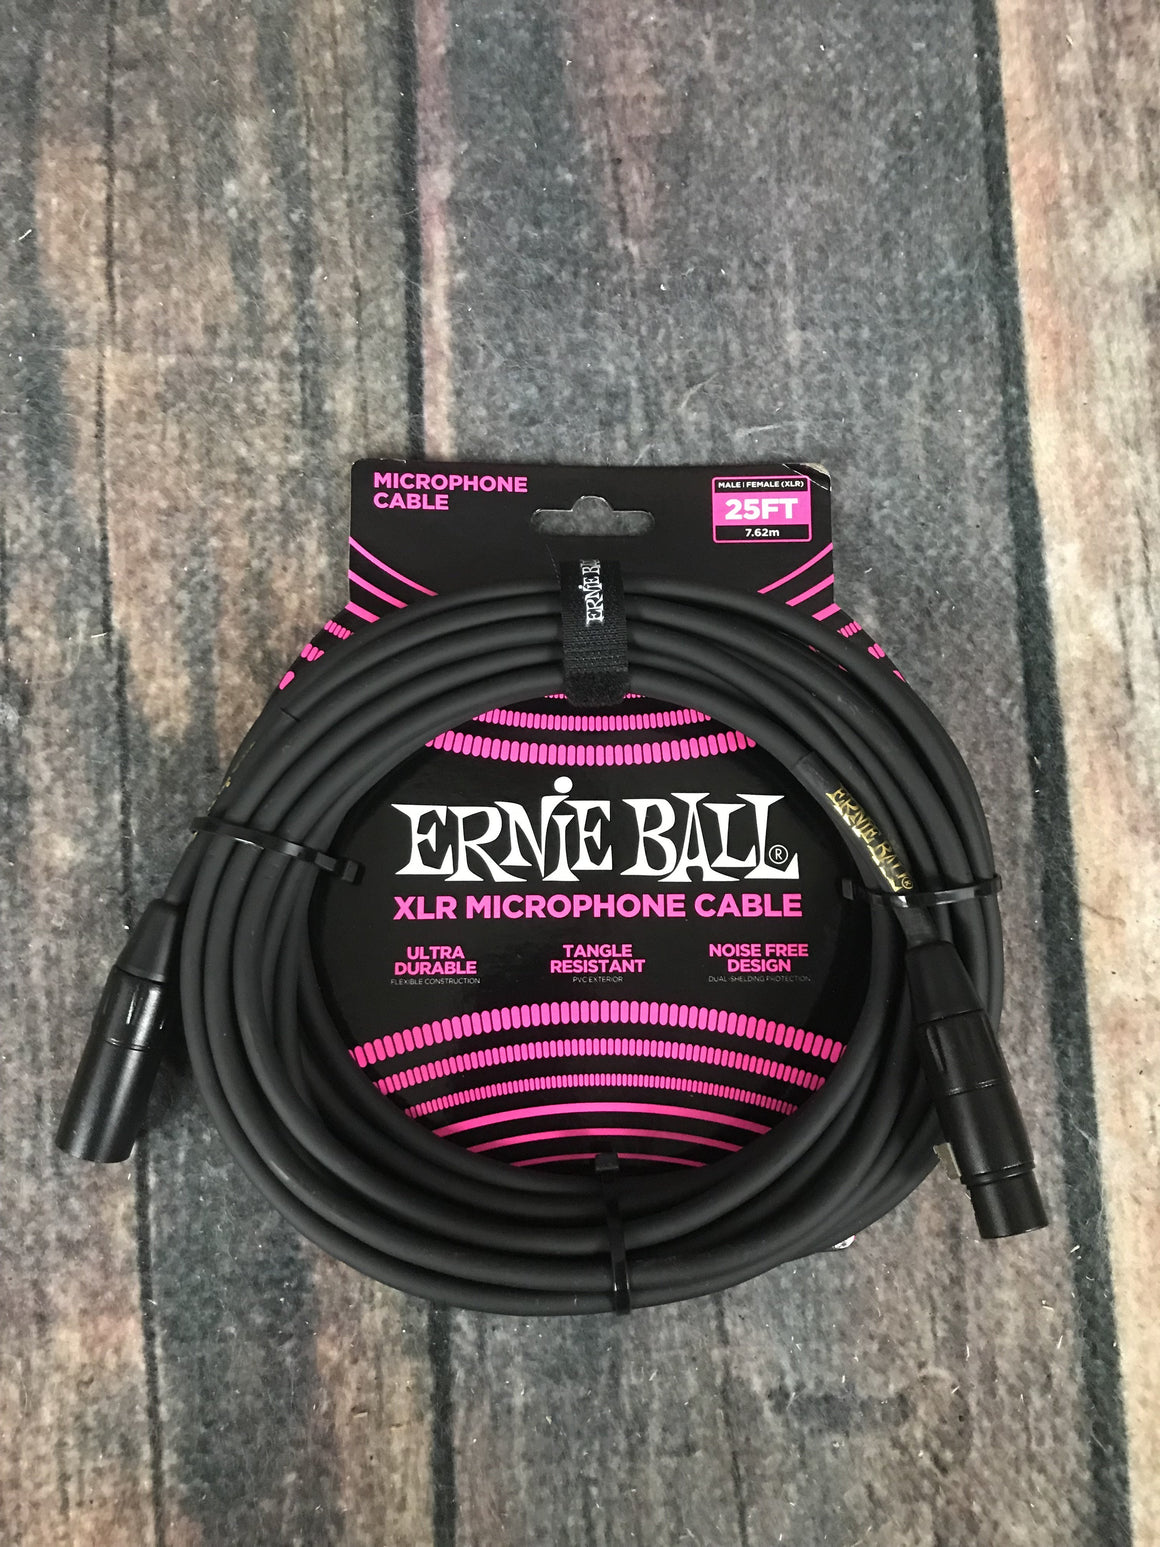 ernie ball Cable Ernie Ball P06073 25' Male / Female XLR Microphone Cable